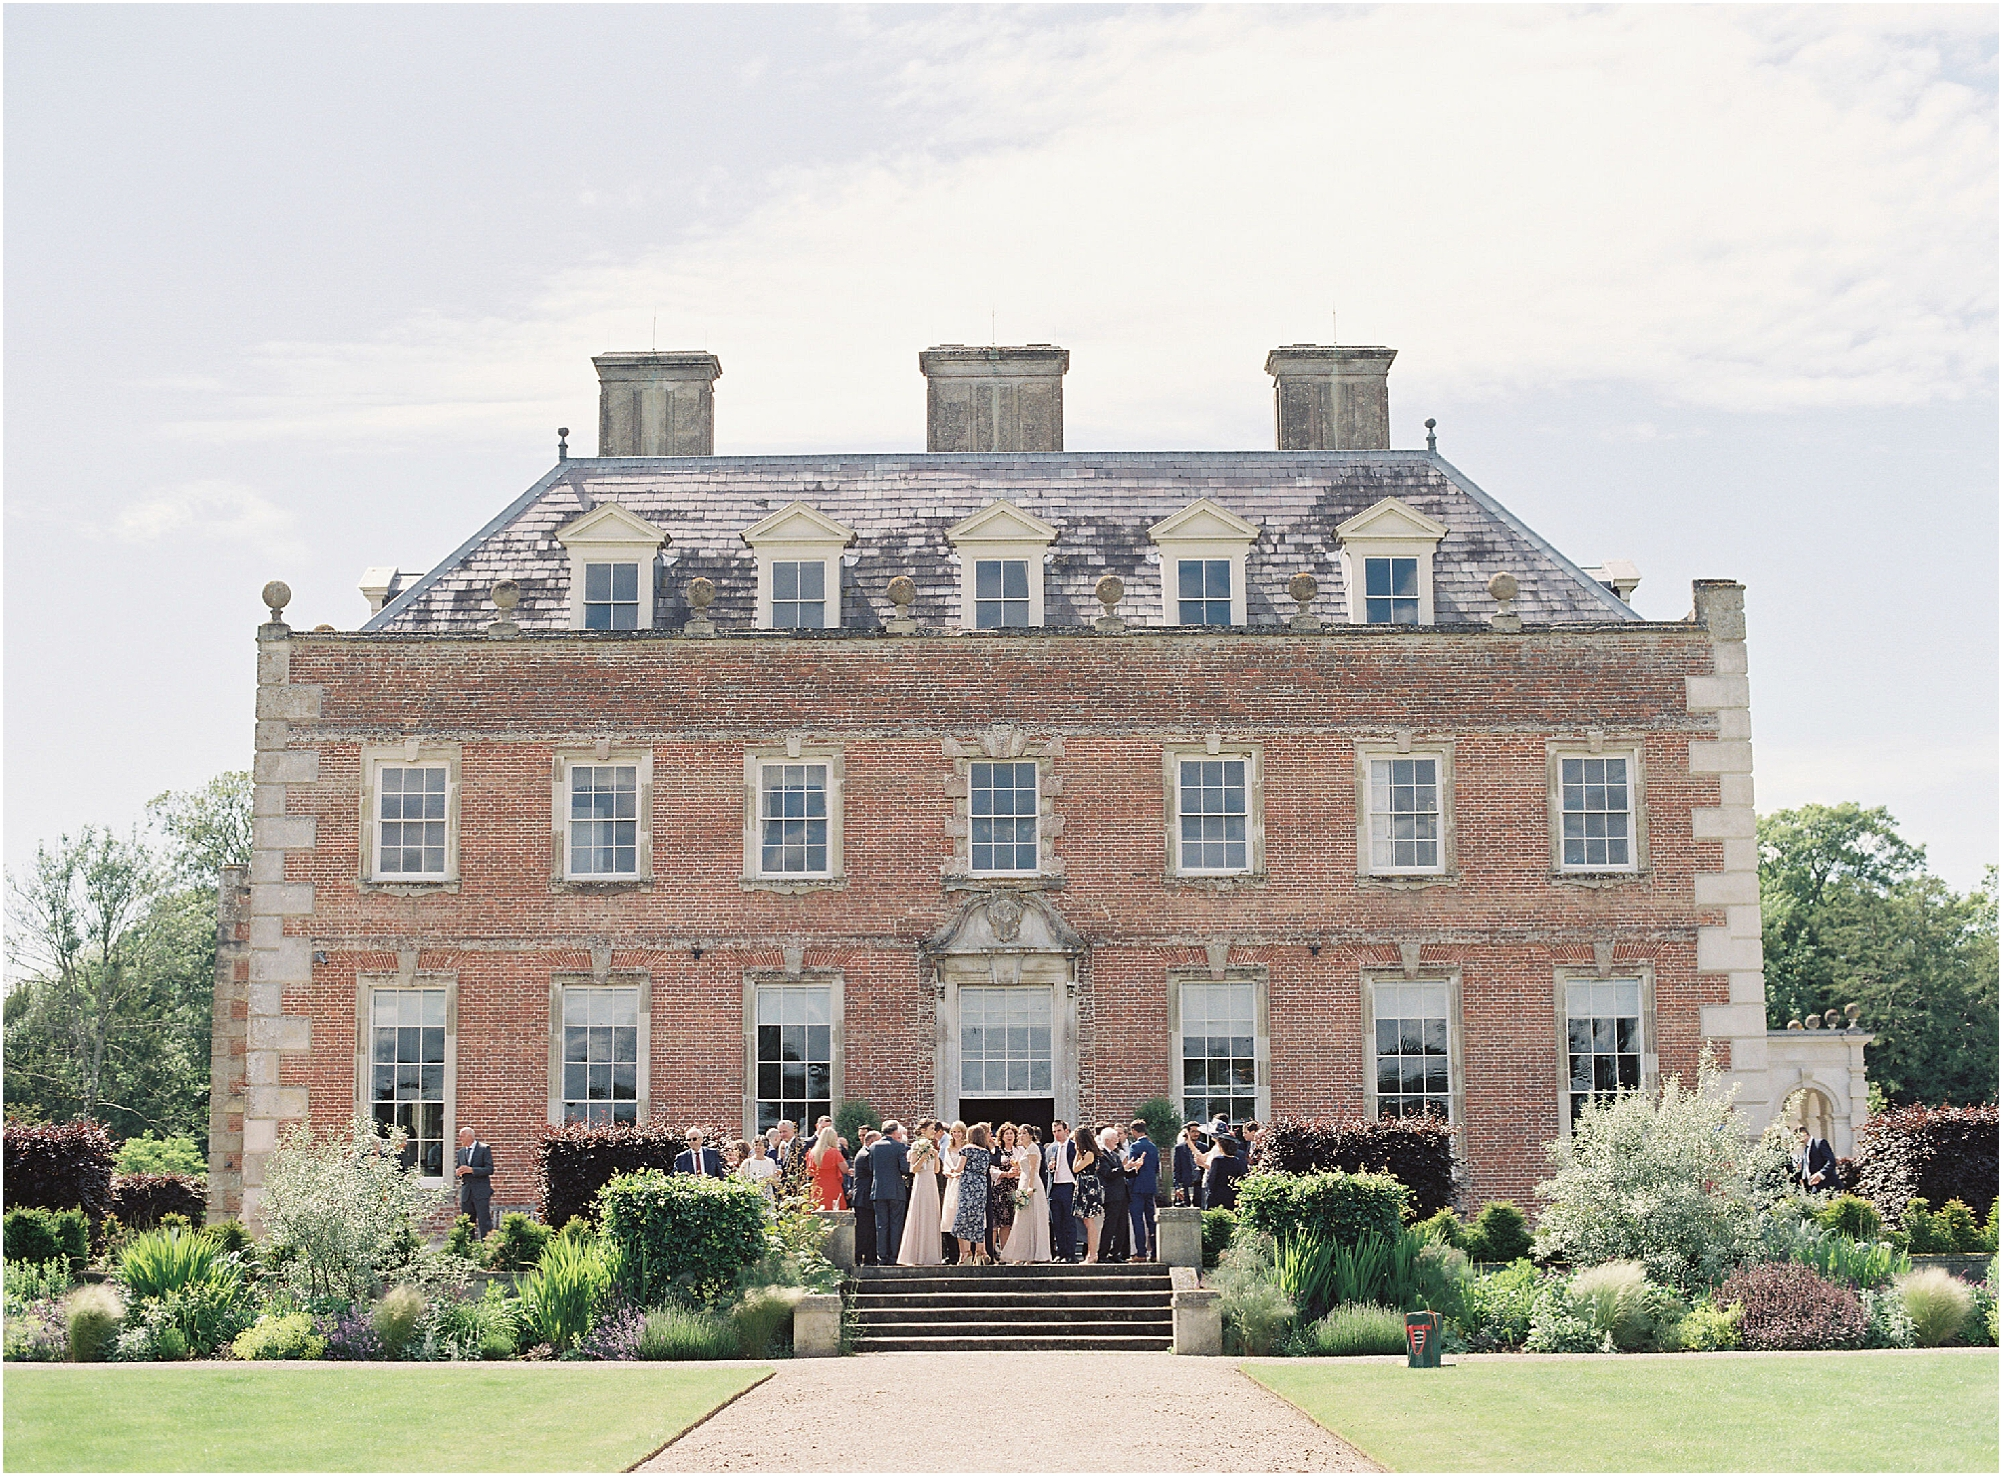 St Giles House photographed during a wedding reception by Camilla Arnhold romantic film wedding photogragraphy